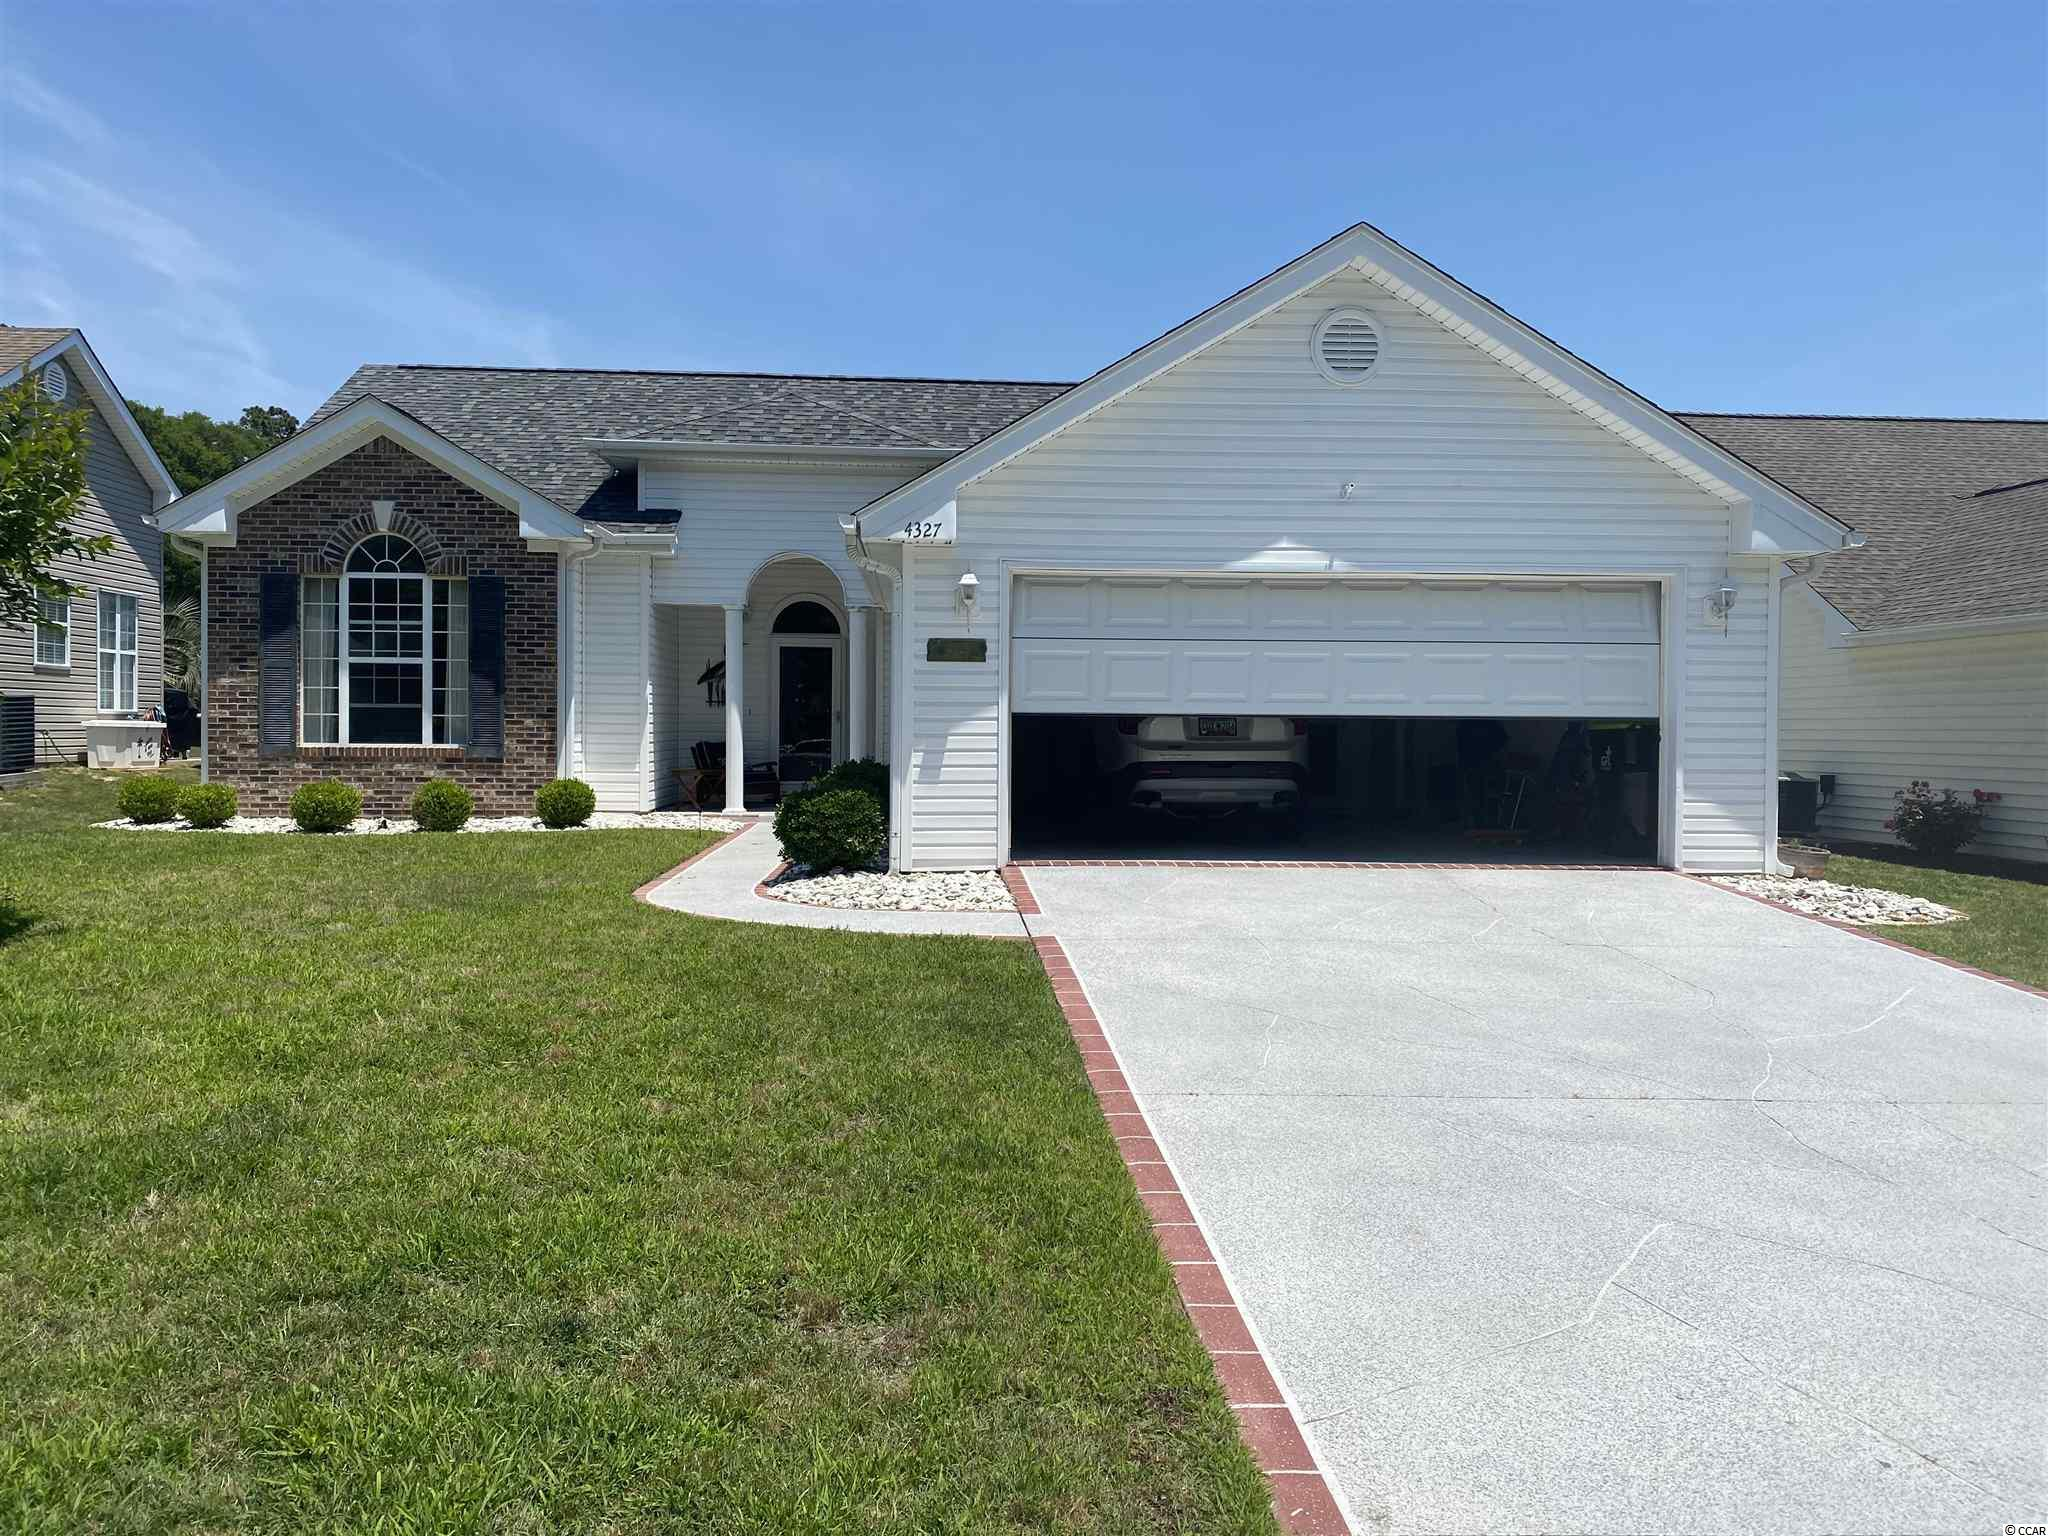 Great opportunity available in The Oaks at Eastport. This single level, 3BR/2B home with a 2-car attached Garage has beautiful views of pond and golf course from the back patio.